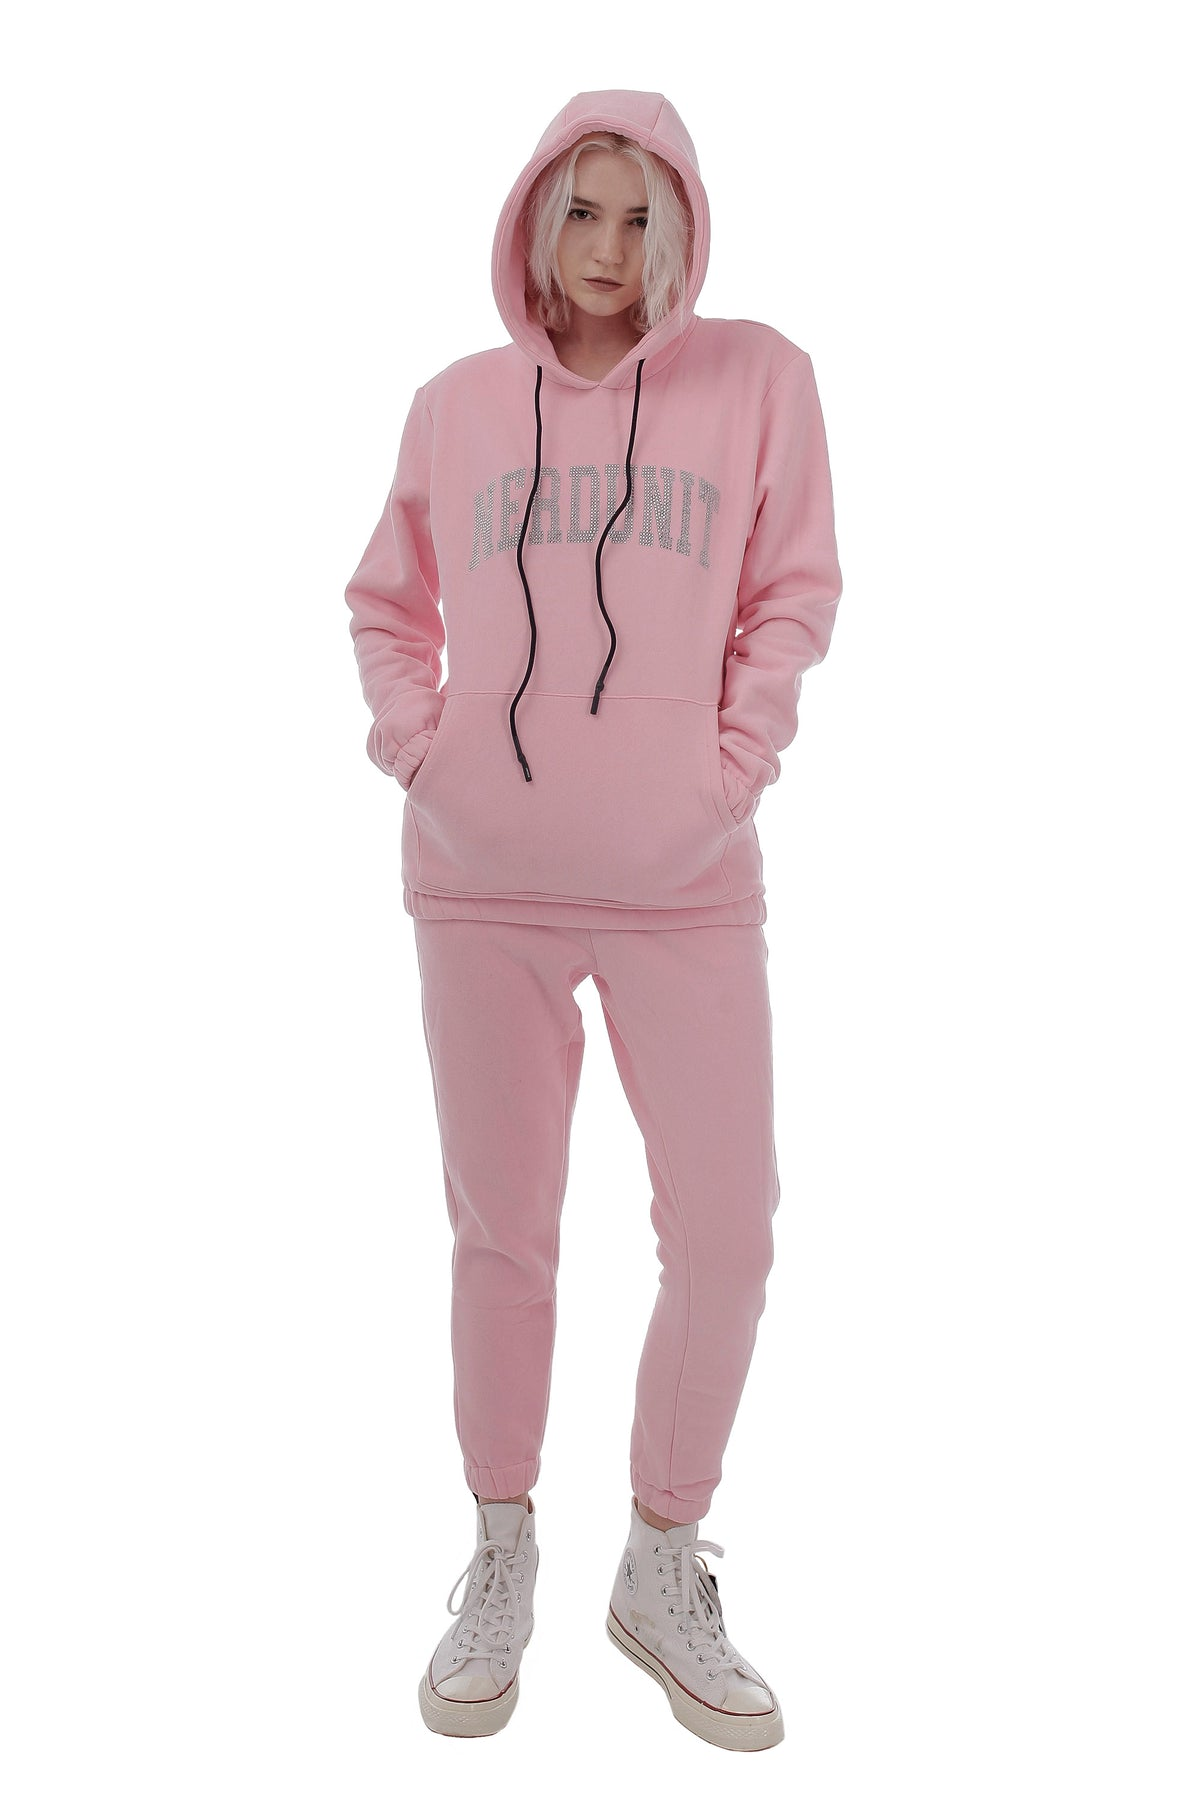 RS COLLEGE HOODIE | PINK ( RS カレッジ フーディー  | ピンク )